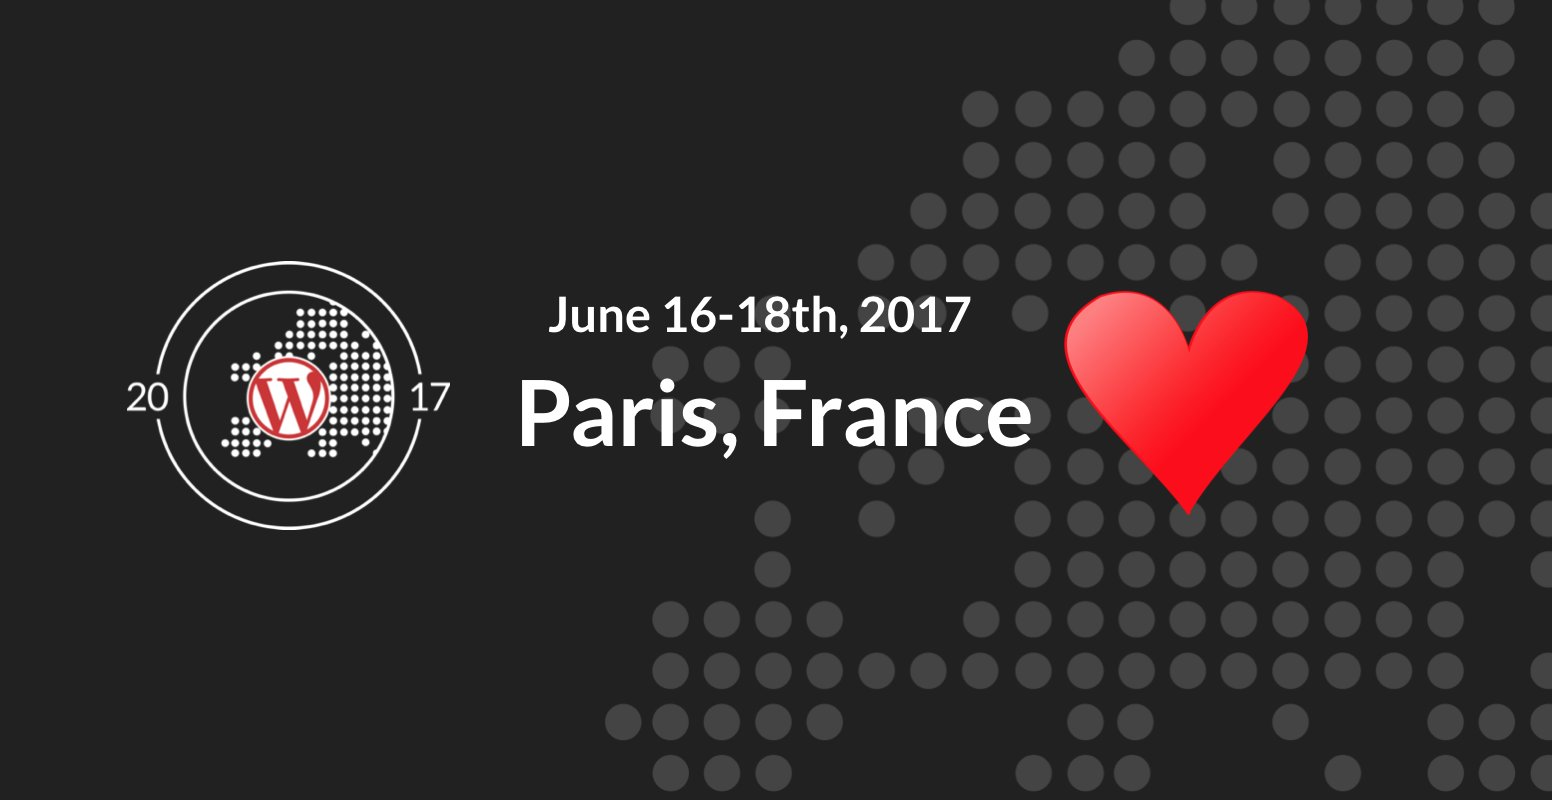 RT @WCEurope: We're excited to…